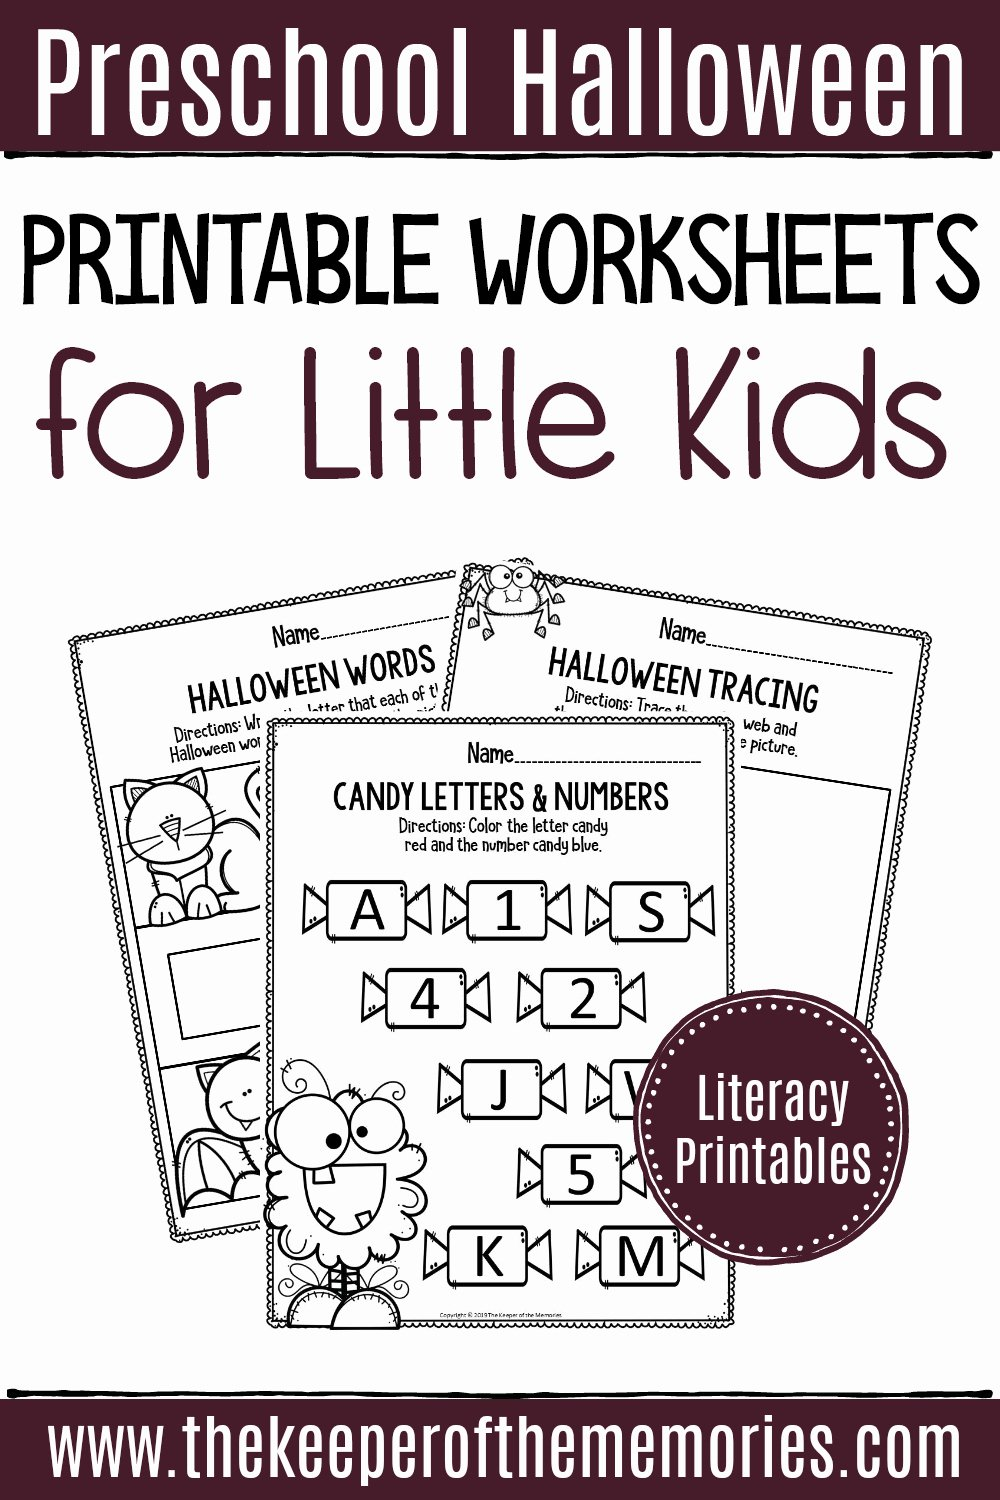 Halloween Worksheets for Preschoolers Inspirational Printable Literacy Halloween Preschool Worksheets